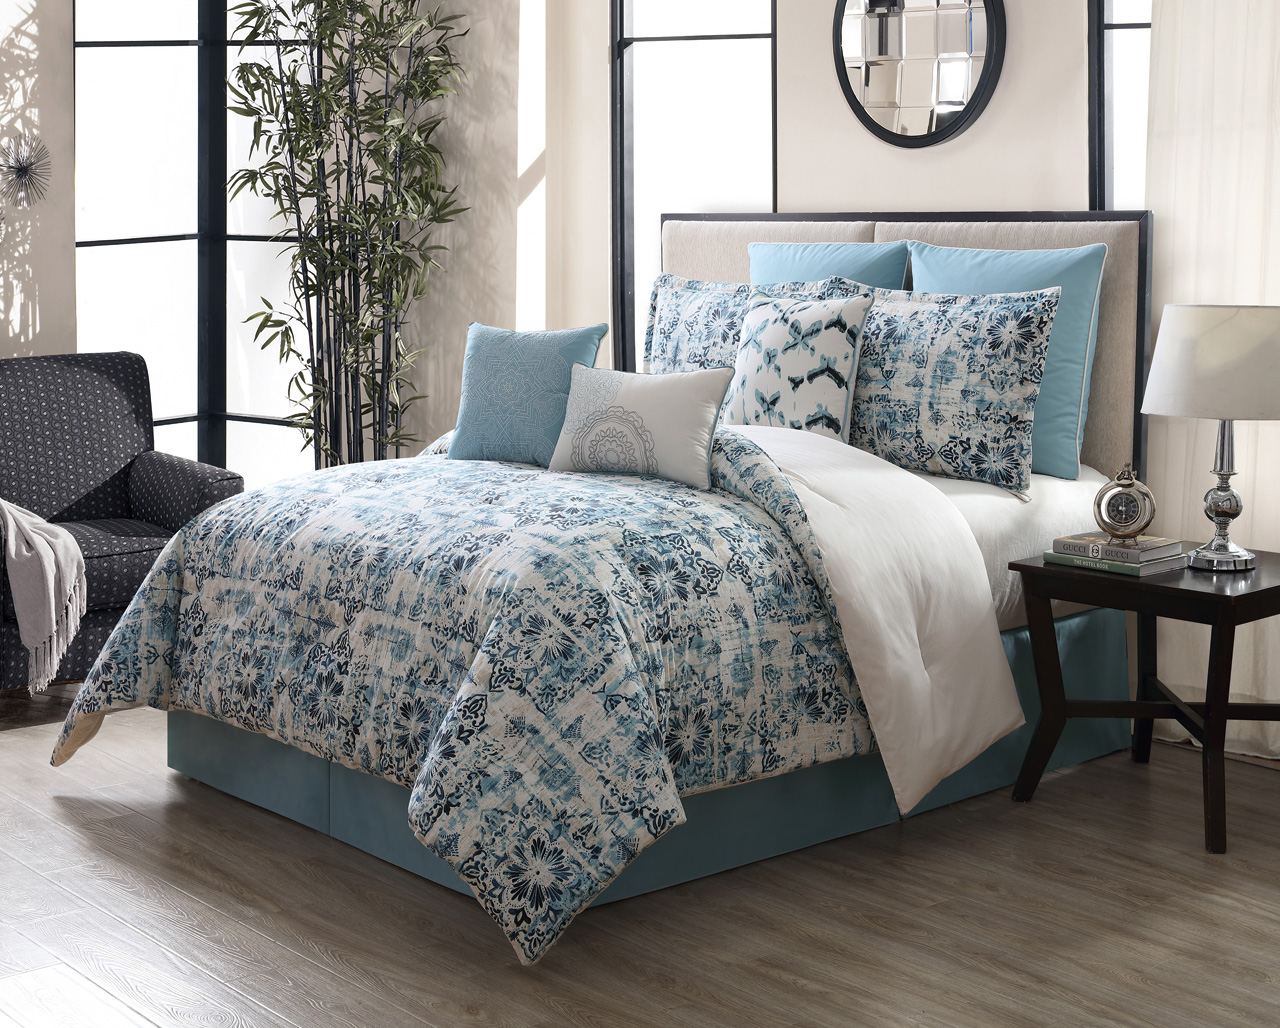 ruffled set comforter teal decor home bedroom